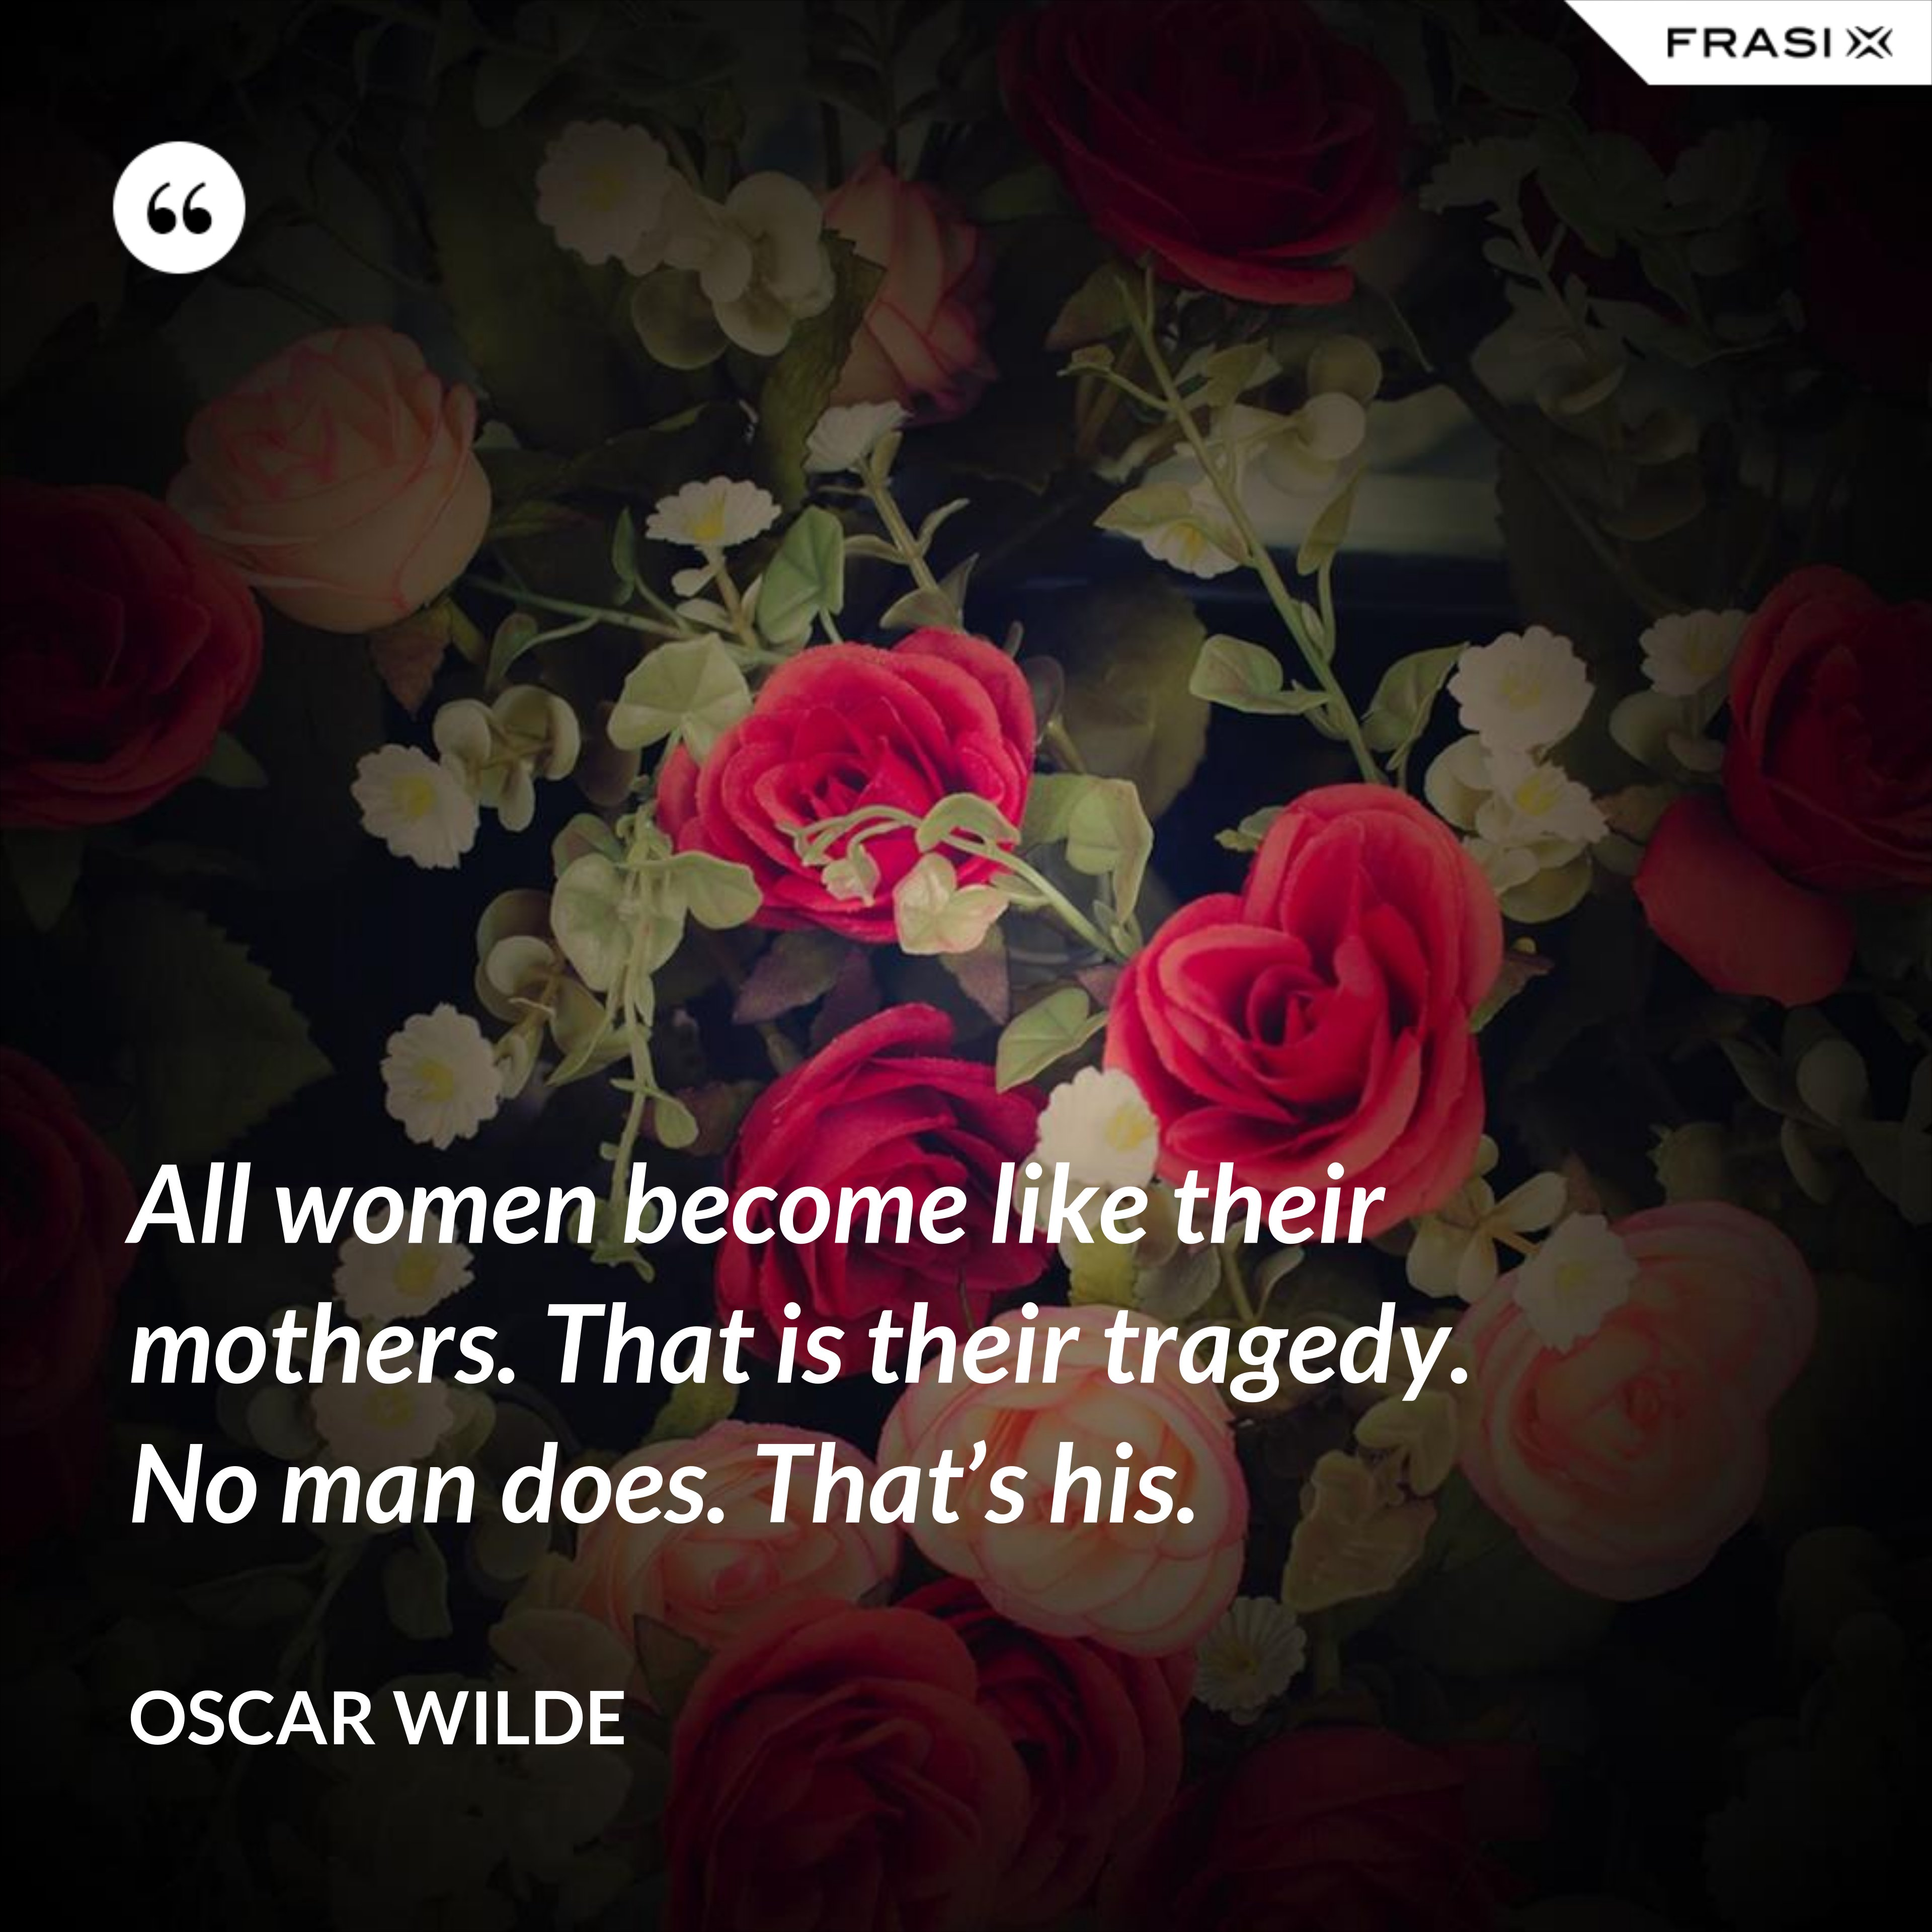 All women become like their mothers. That is their tragedy. No man does. That's his. - Oscar Wilde